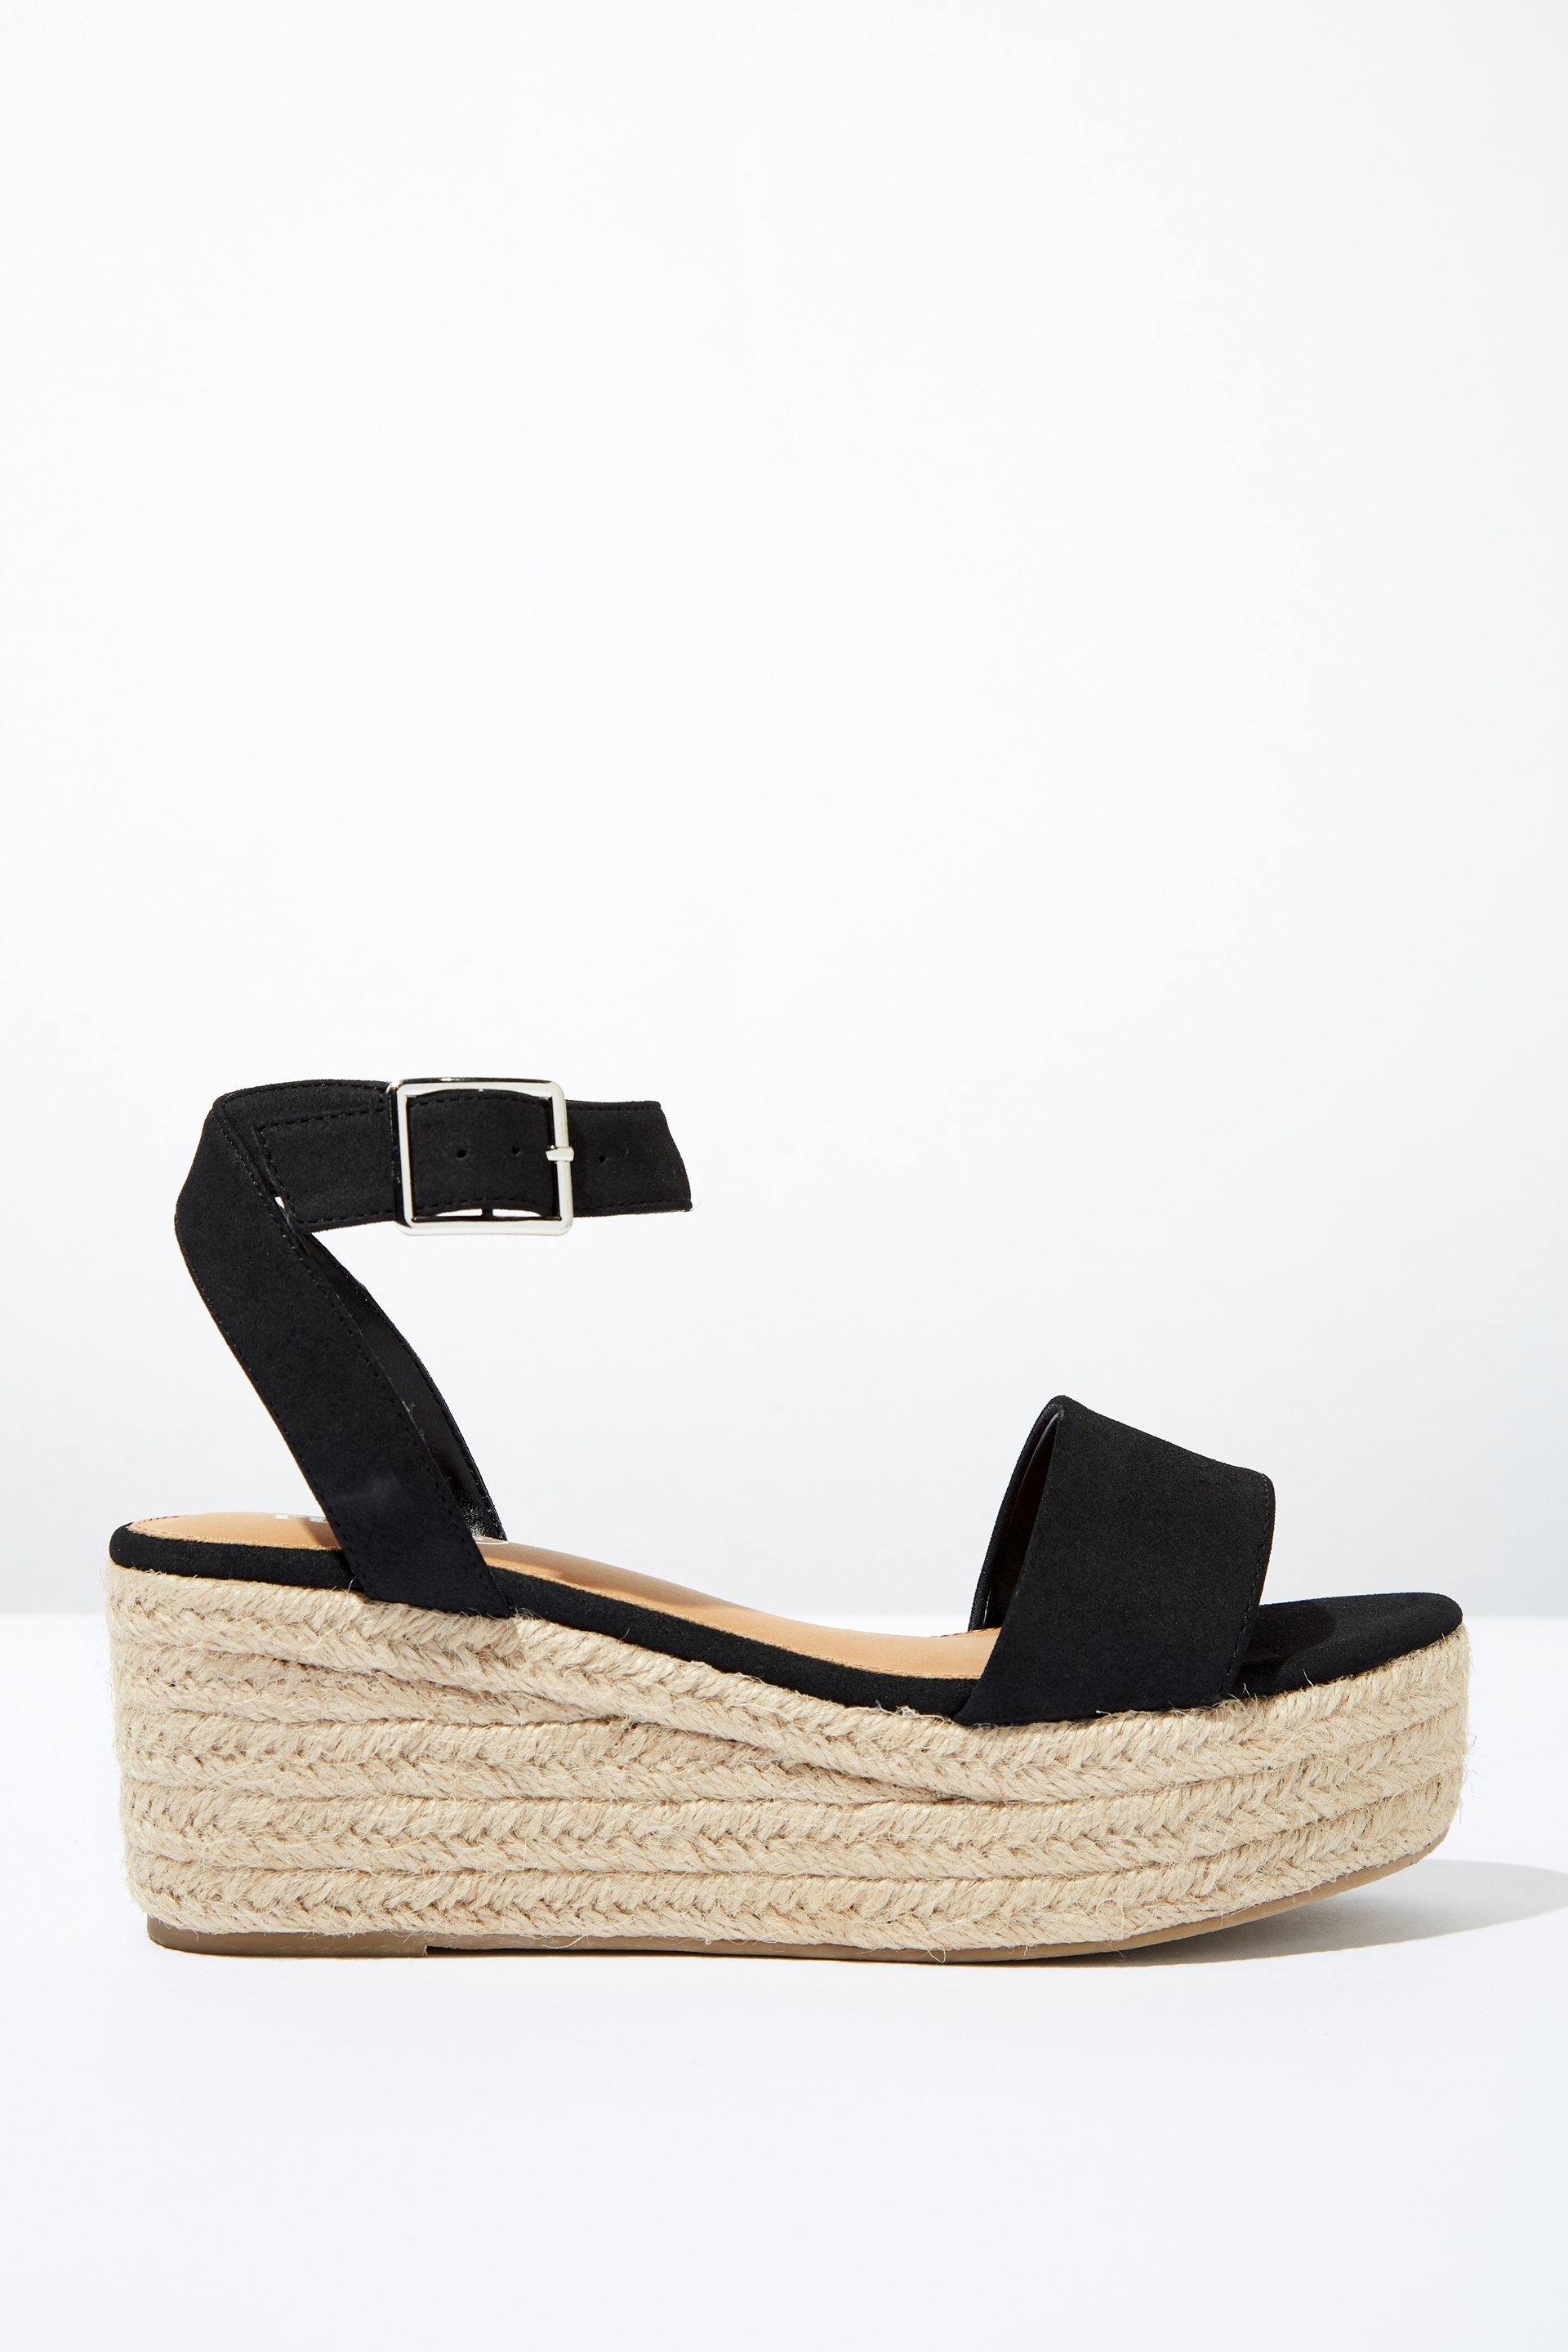 635b7be5617a3 Caitlin Espadrille Wedge Heel | Women's Fashion Accessories & Shoes ...